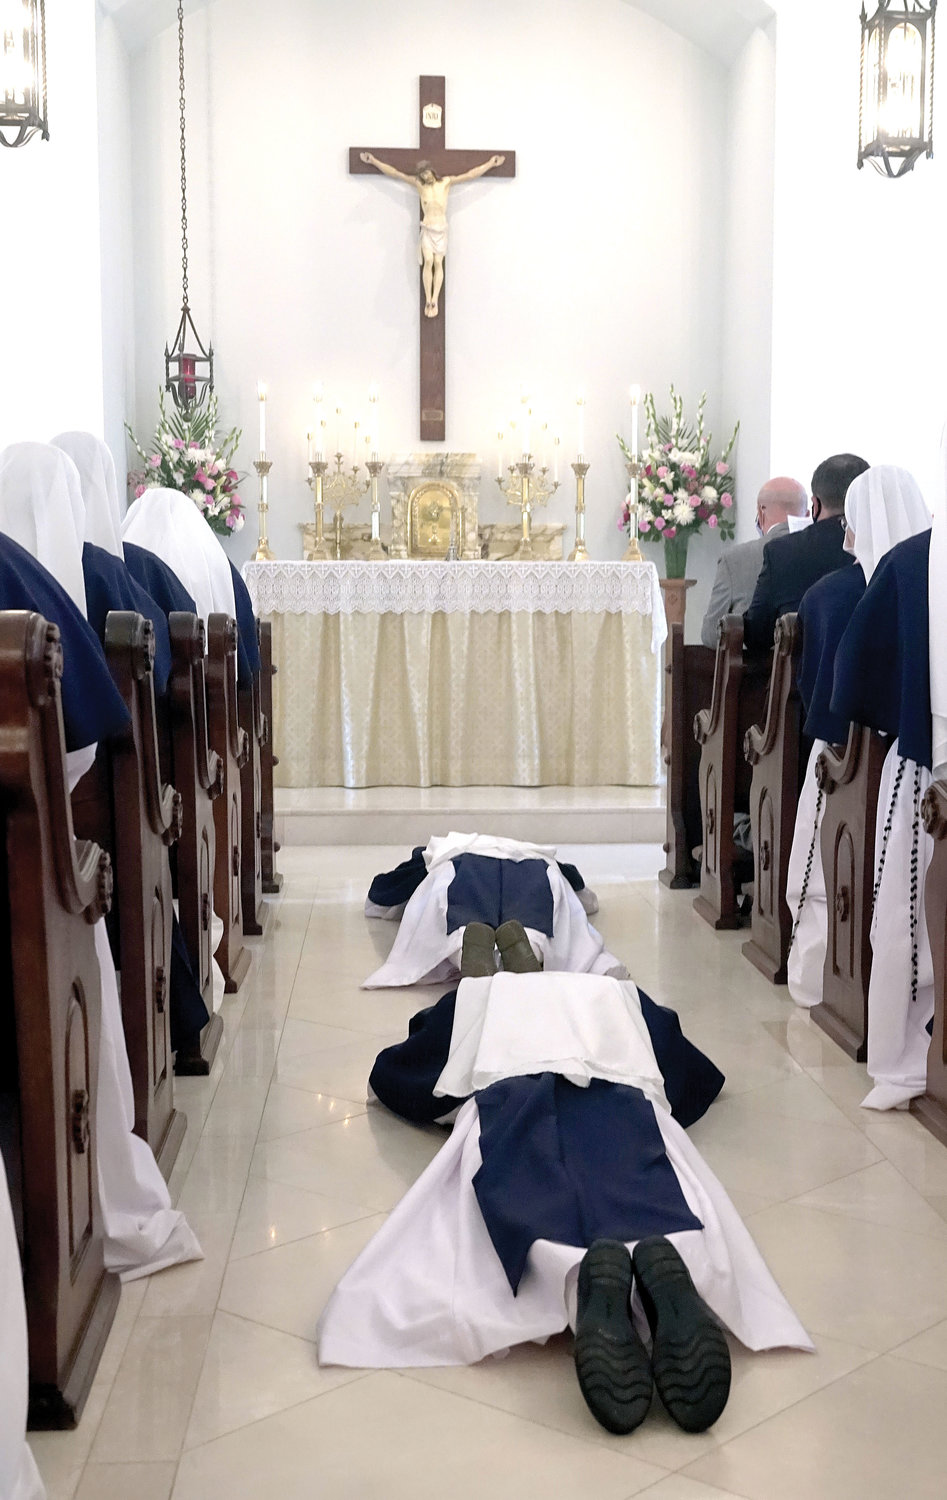 Sister Virginia Joy, S.V. and Sister Naomi Maria Magnificat, S.V., lay prostrate on the chapel floor.